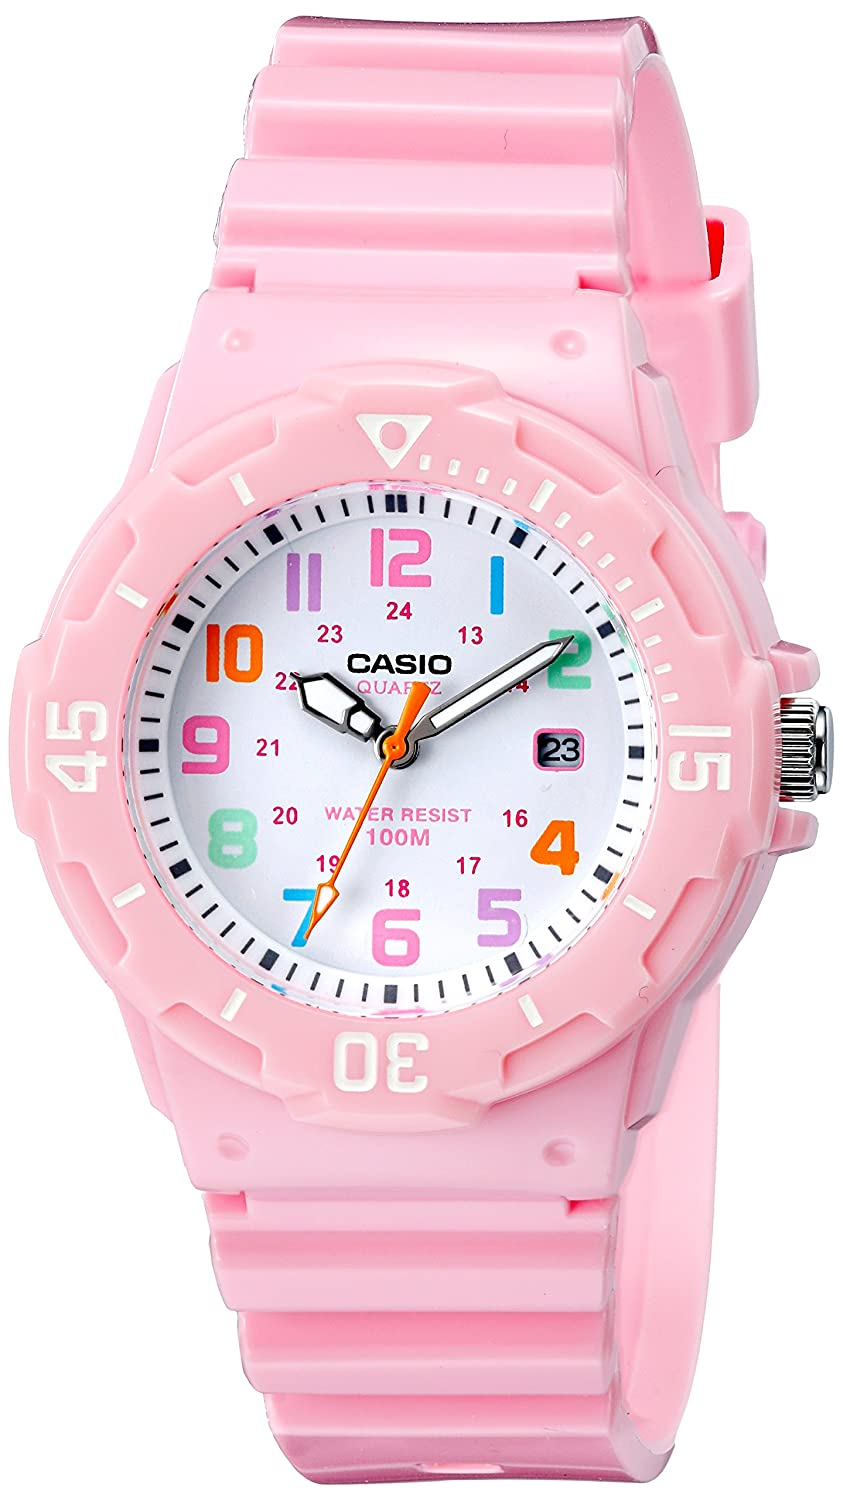 1ff6641a0691 Amazon.com  Casio Women s LRW-200H-4B2VCF Pink Stainless Steel Watch with  Resin Band  Casio  Watches